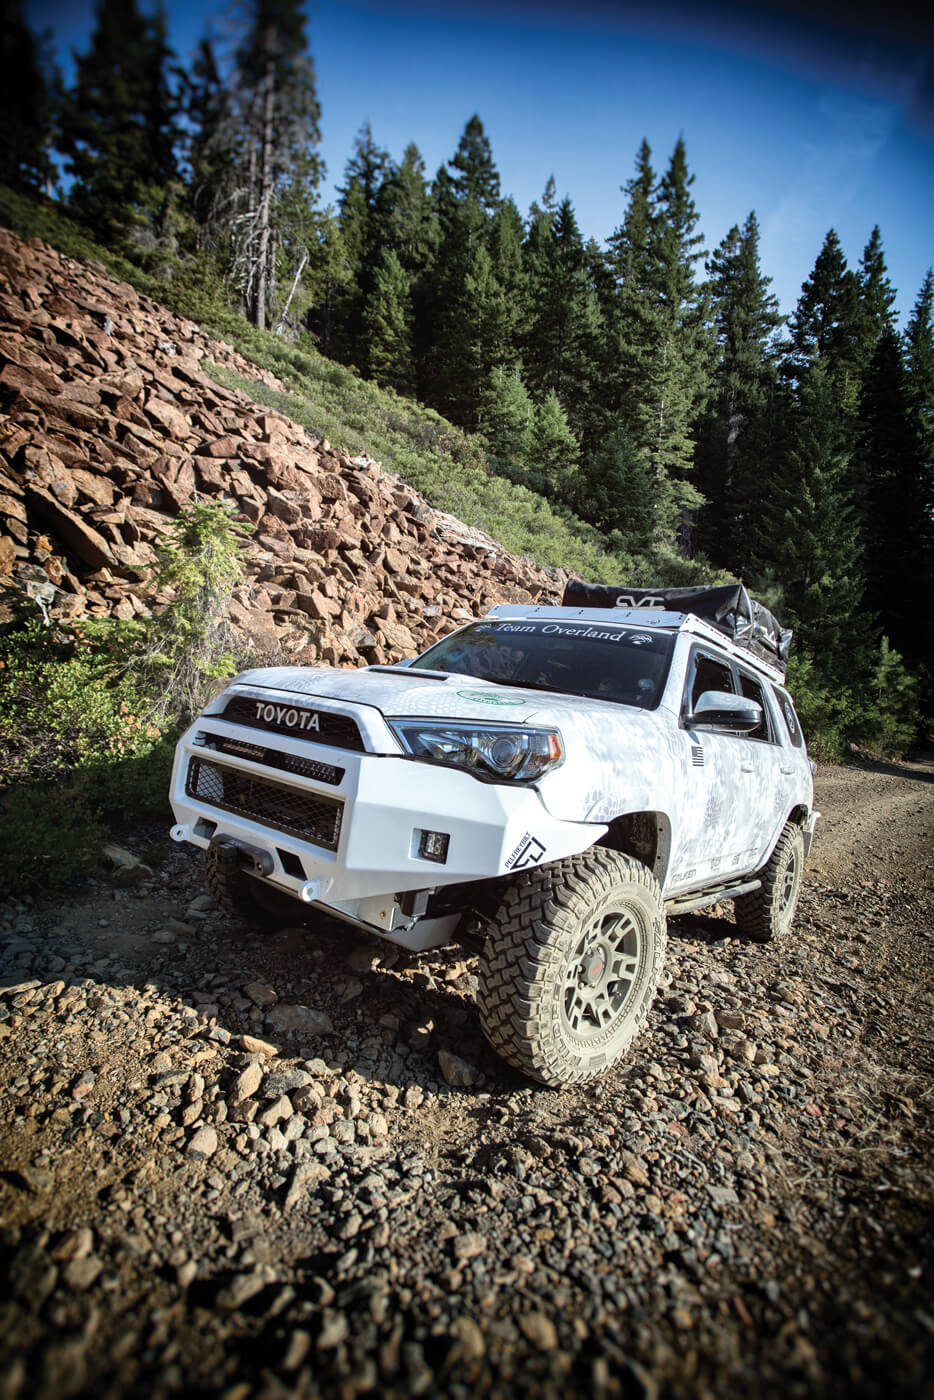 The 4Runner's Multi-terrain Select Drive-mode system makes it easy to dial in the right amount of traction and engine response for differing surfaces.